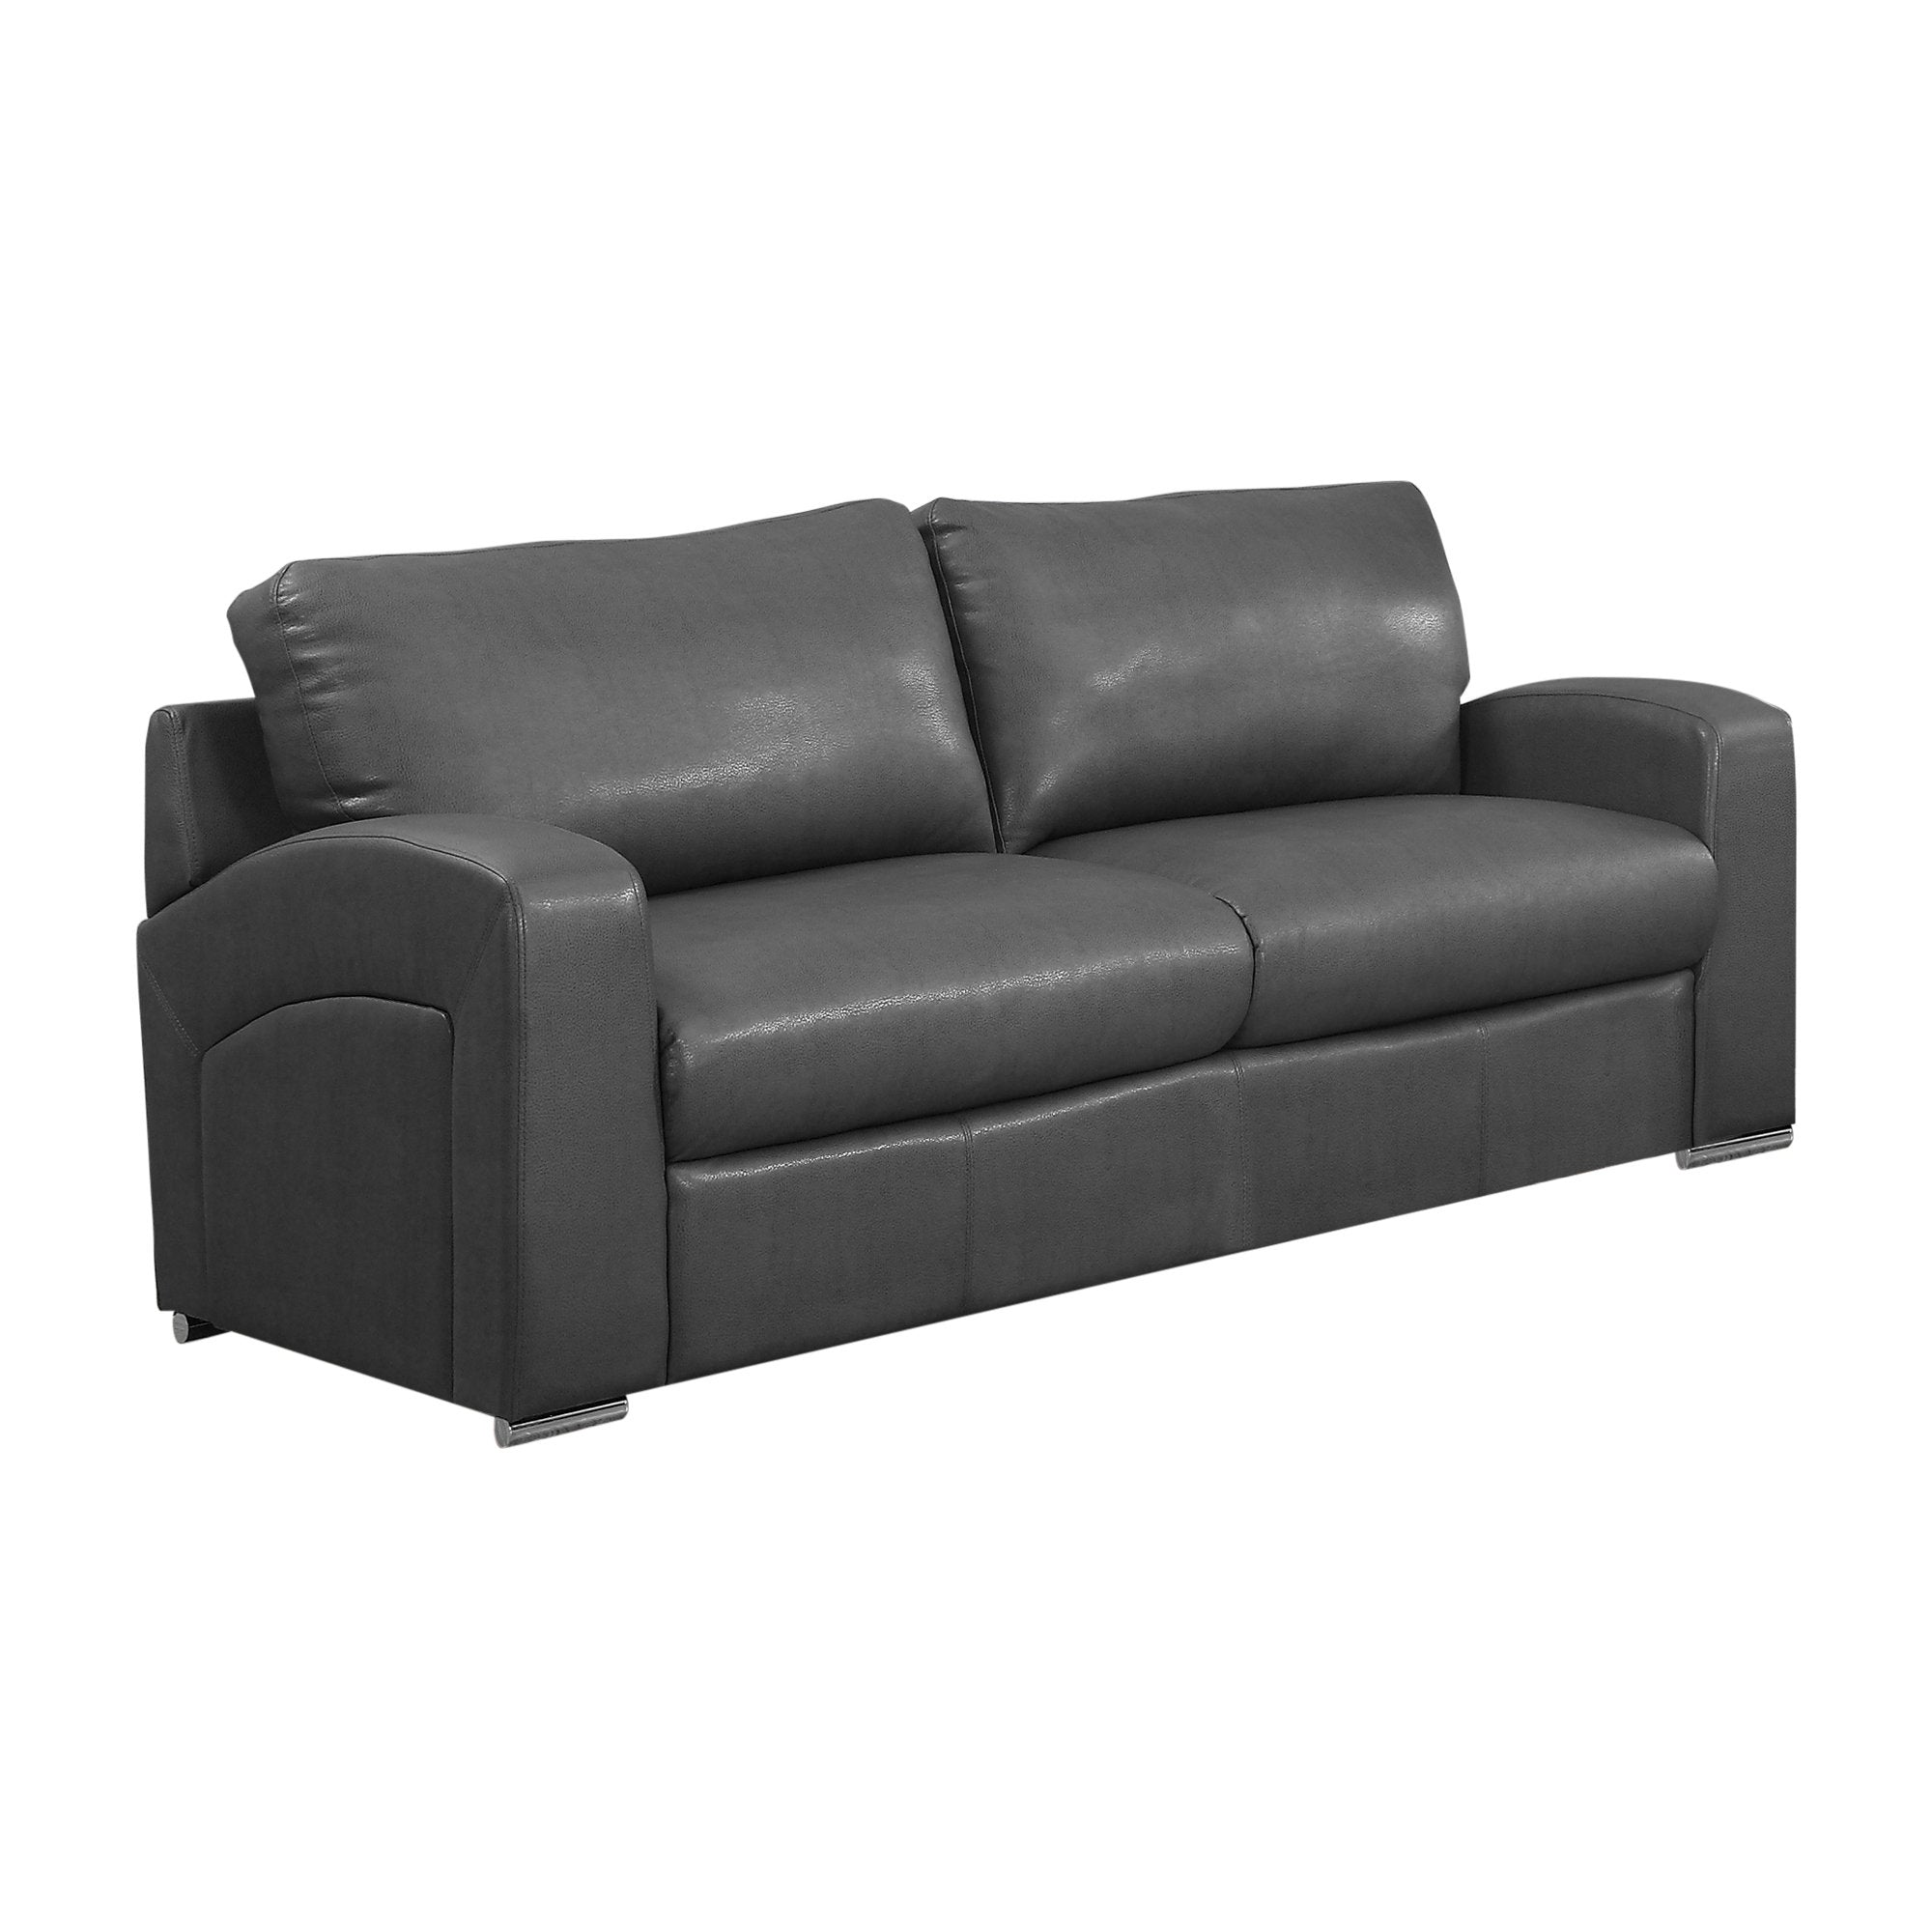 "35"" x 66"" x 36"" Charcoal, Grey Bonded Leather - Love Seat"